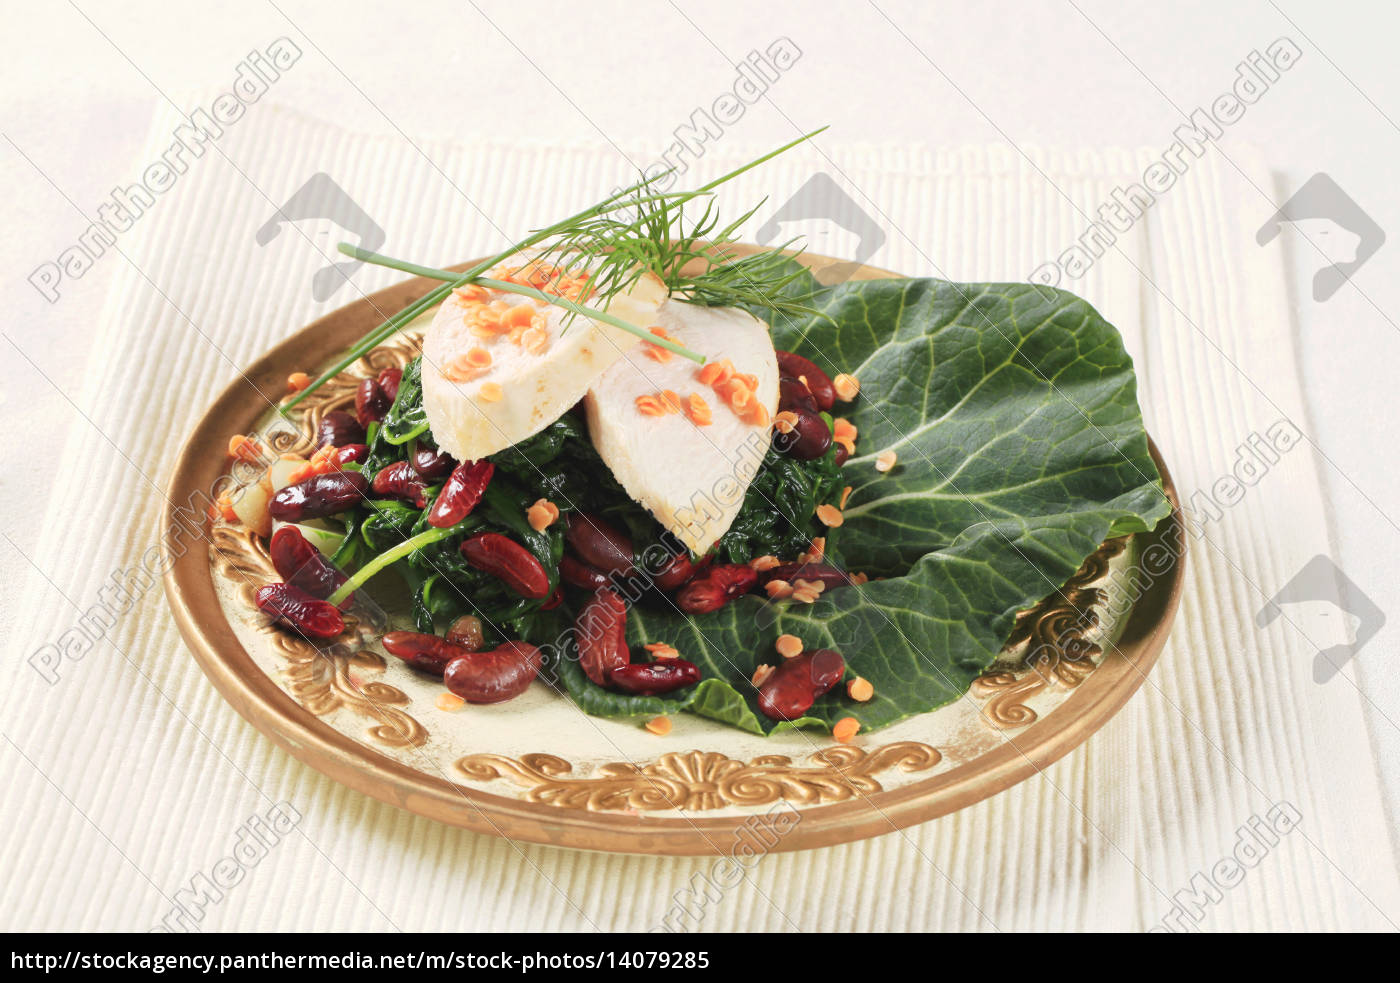 healthy, meal - 14079285